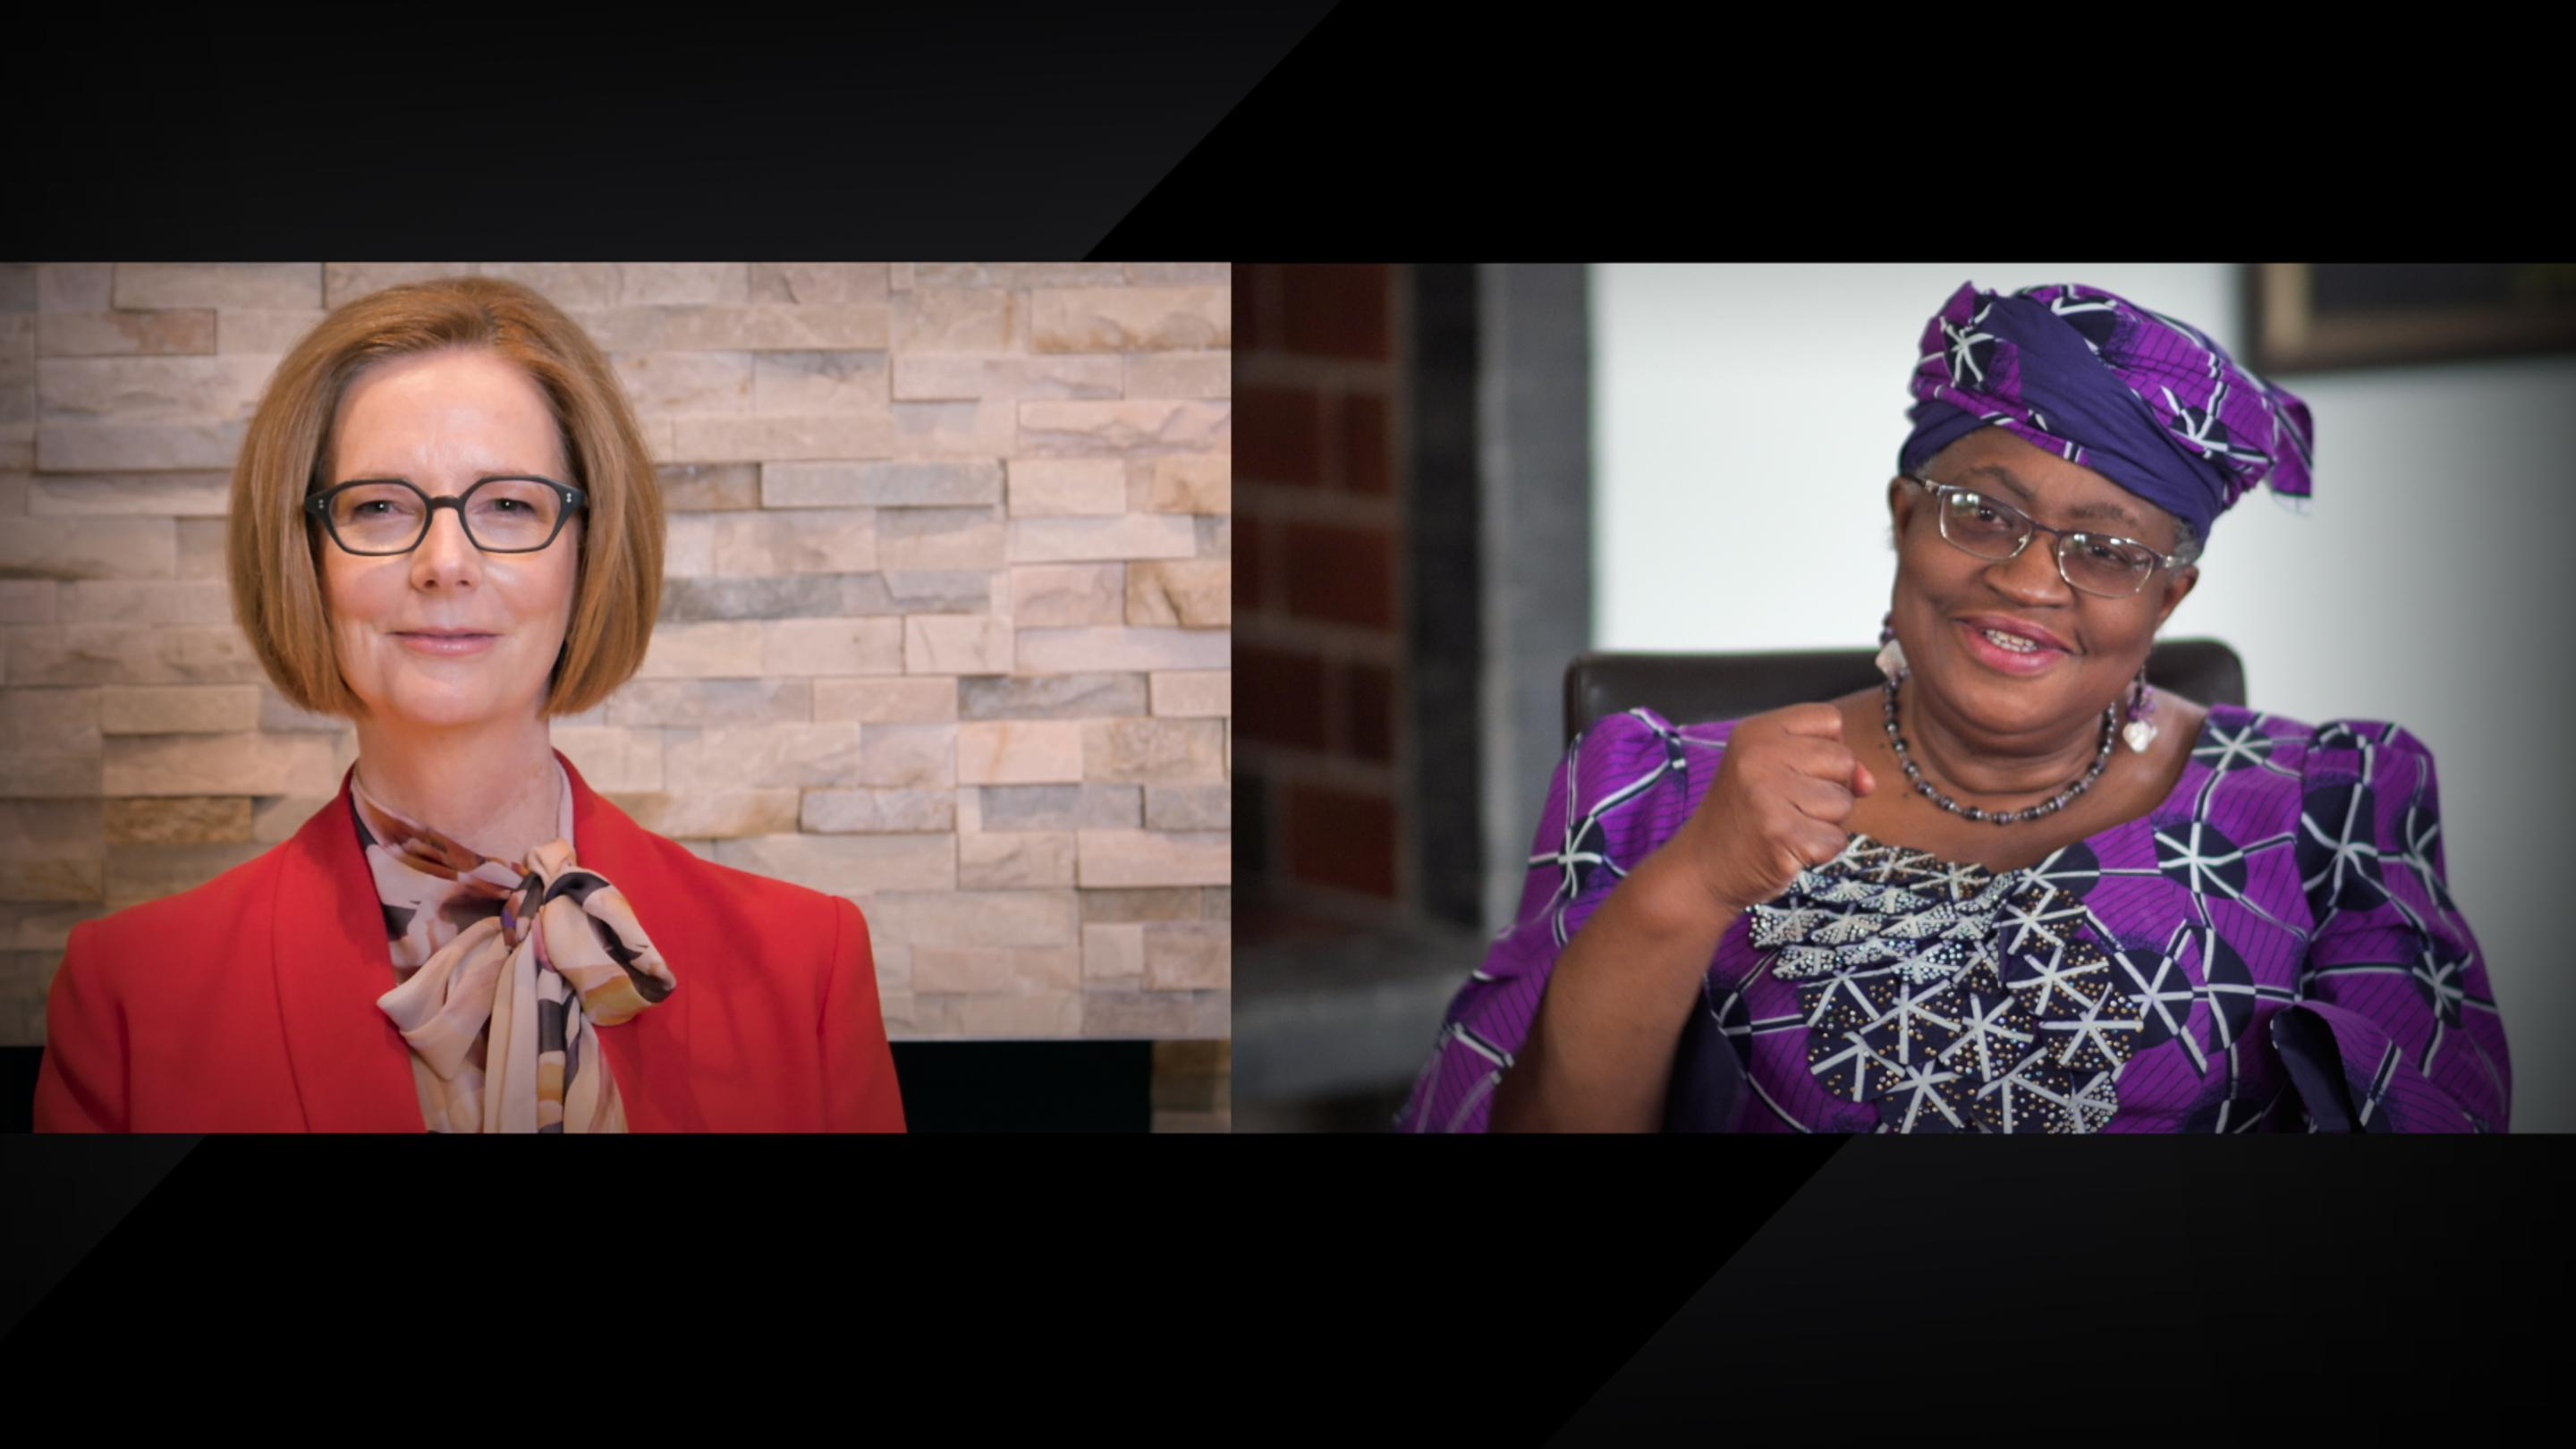 6 essential lessons for women leaders | Julia Gillard and Ngozi Okonjo-Iweala